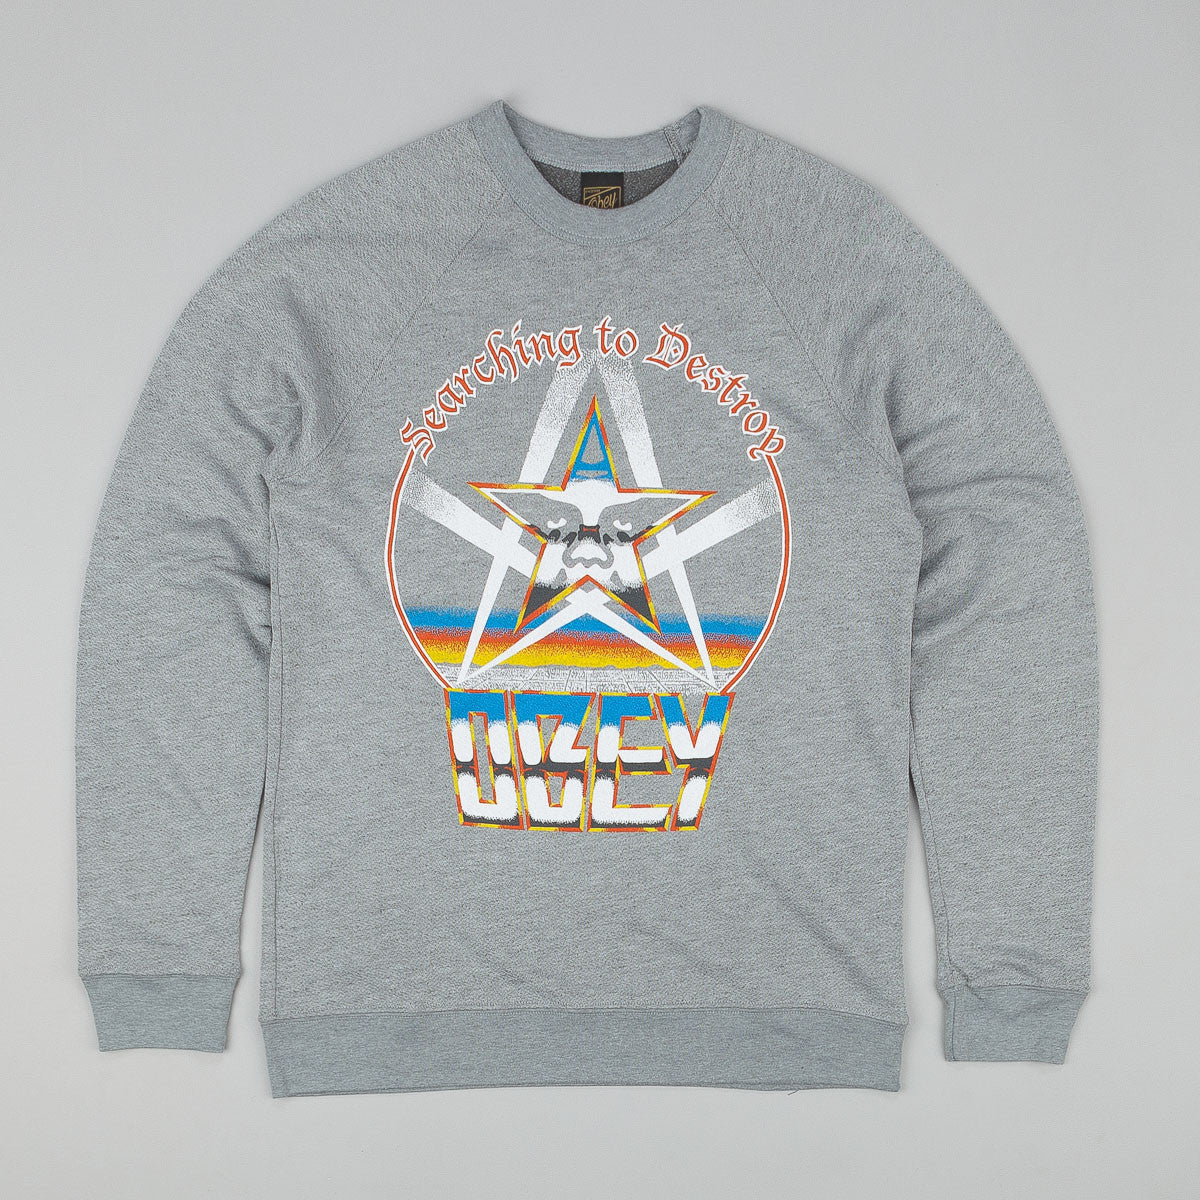 Obey Search To Destroy Sweatshirt Heather Grey